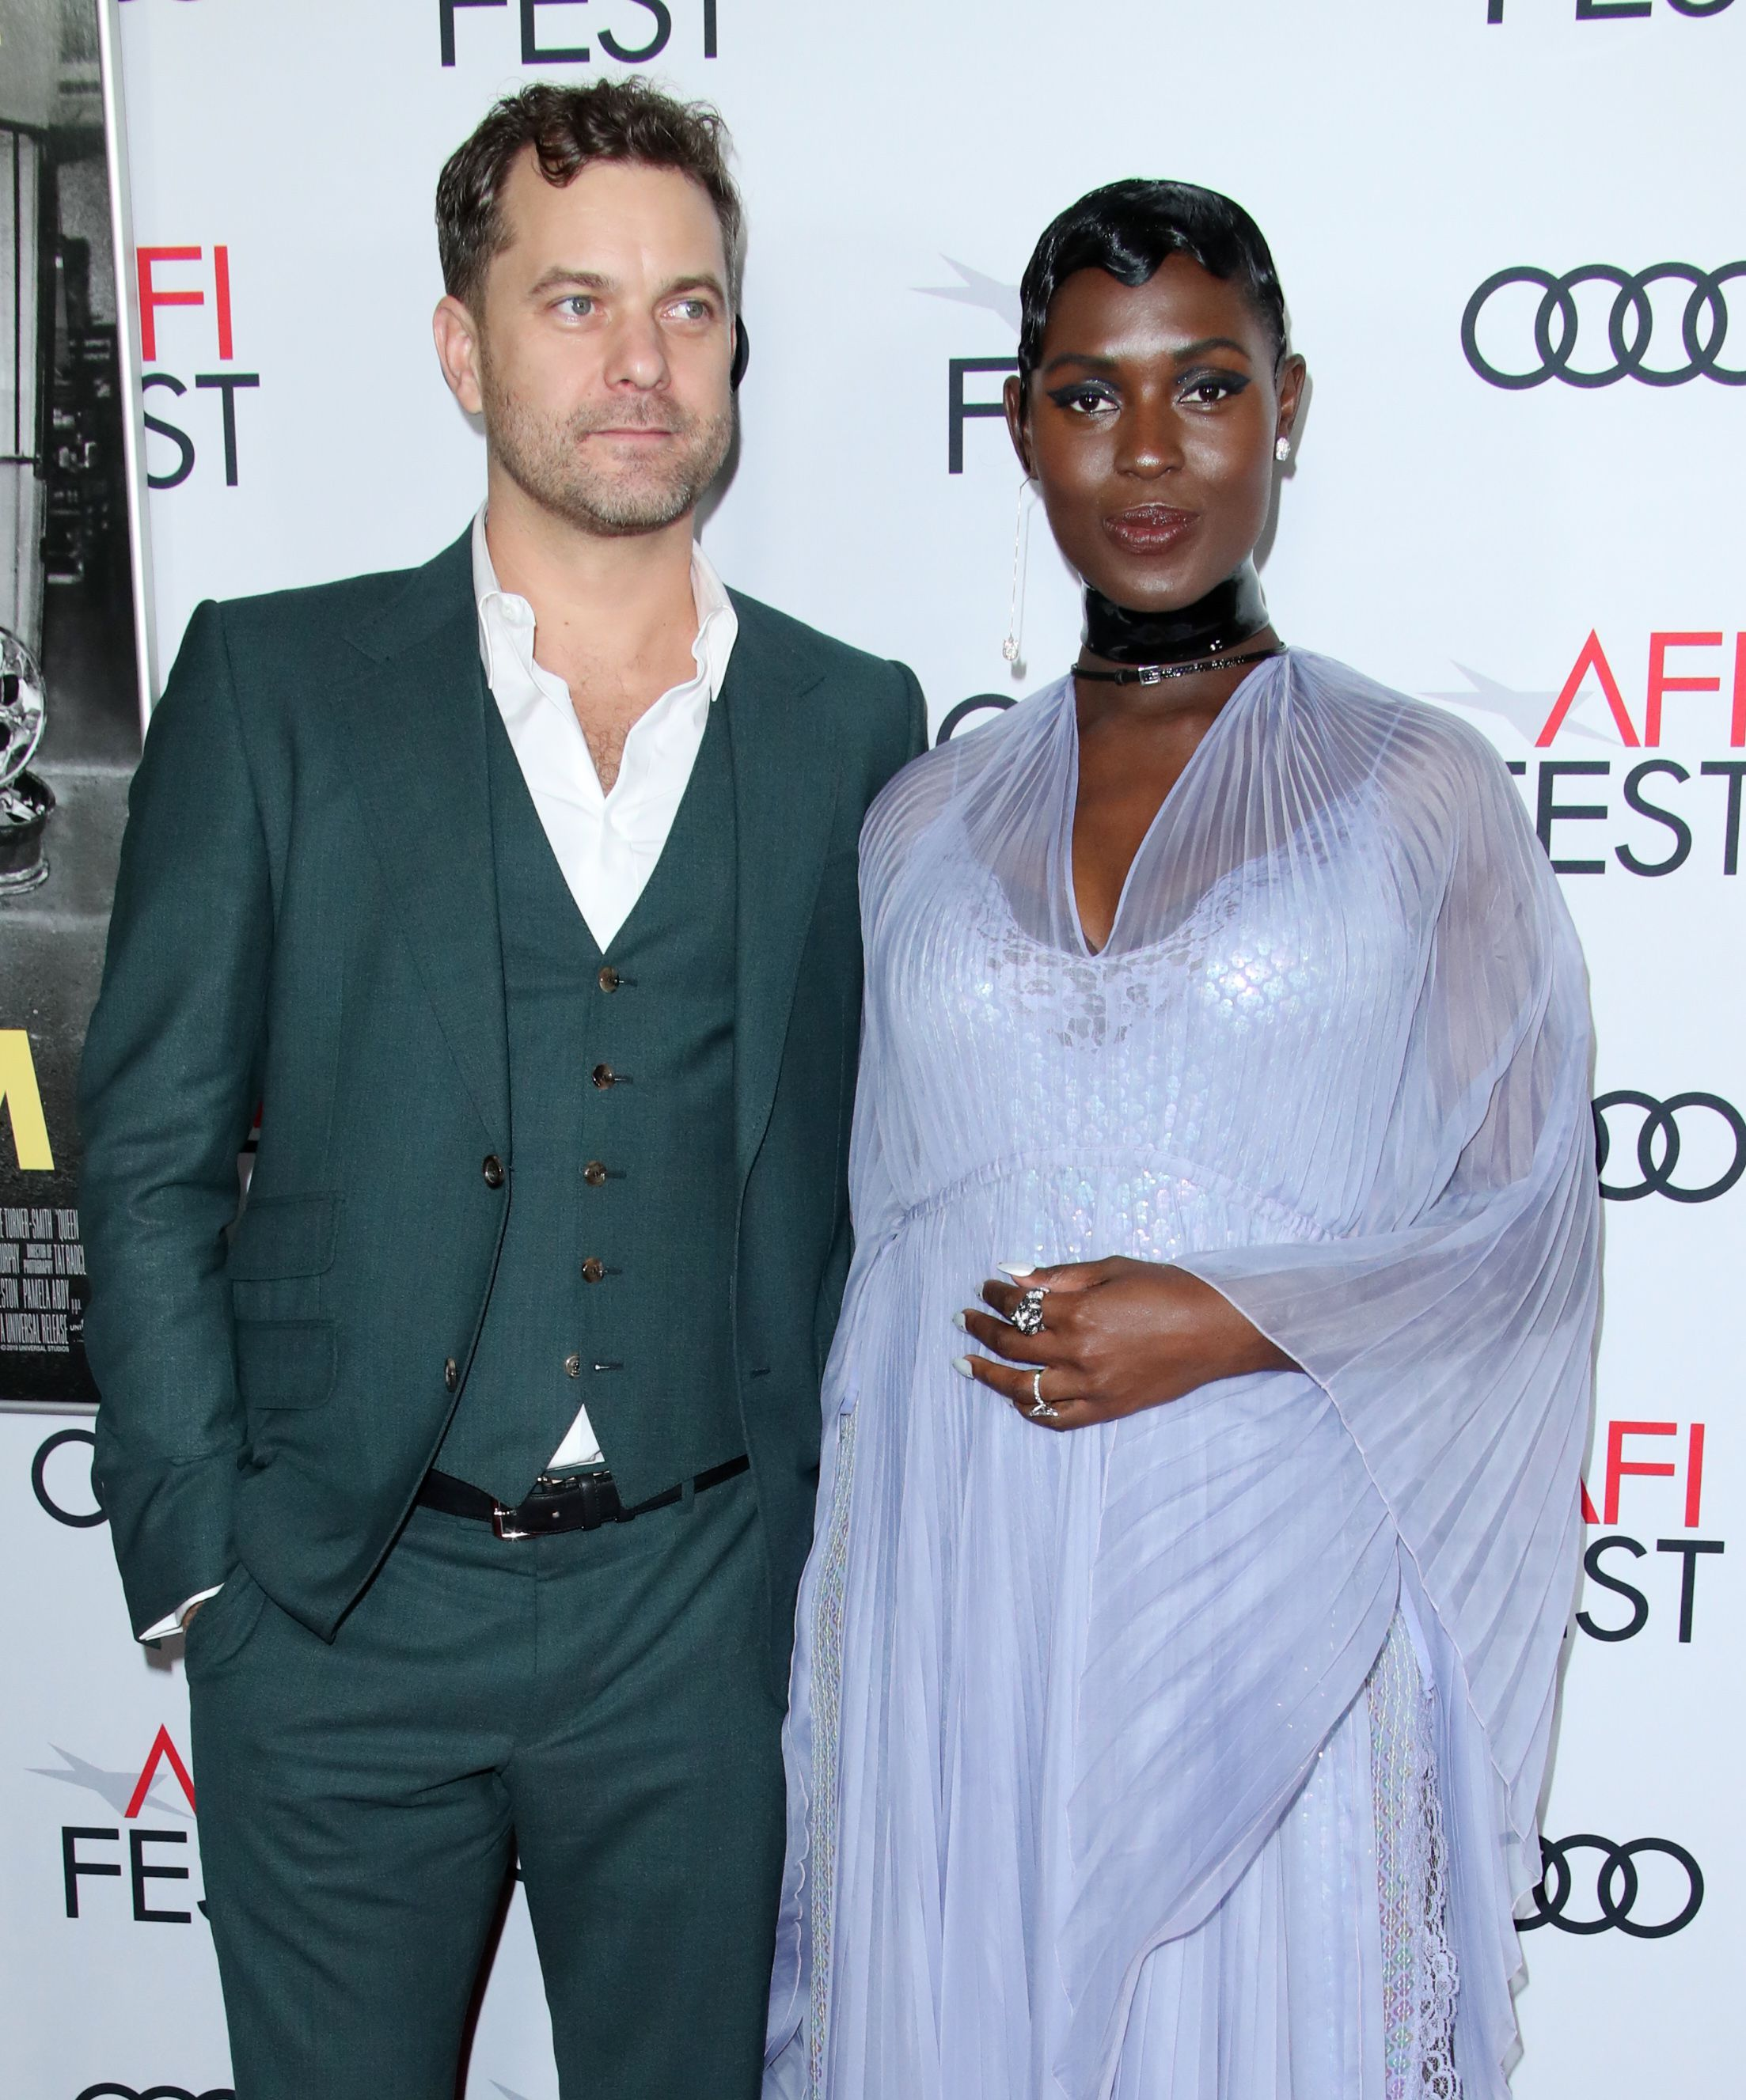 Jodie Turner-Smith and Joshua Jackson 'Queen and Slim' film premiere, Arrivals, AFI Fest, Los Angeles, USA - 14 Nov 2019